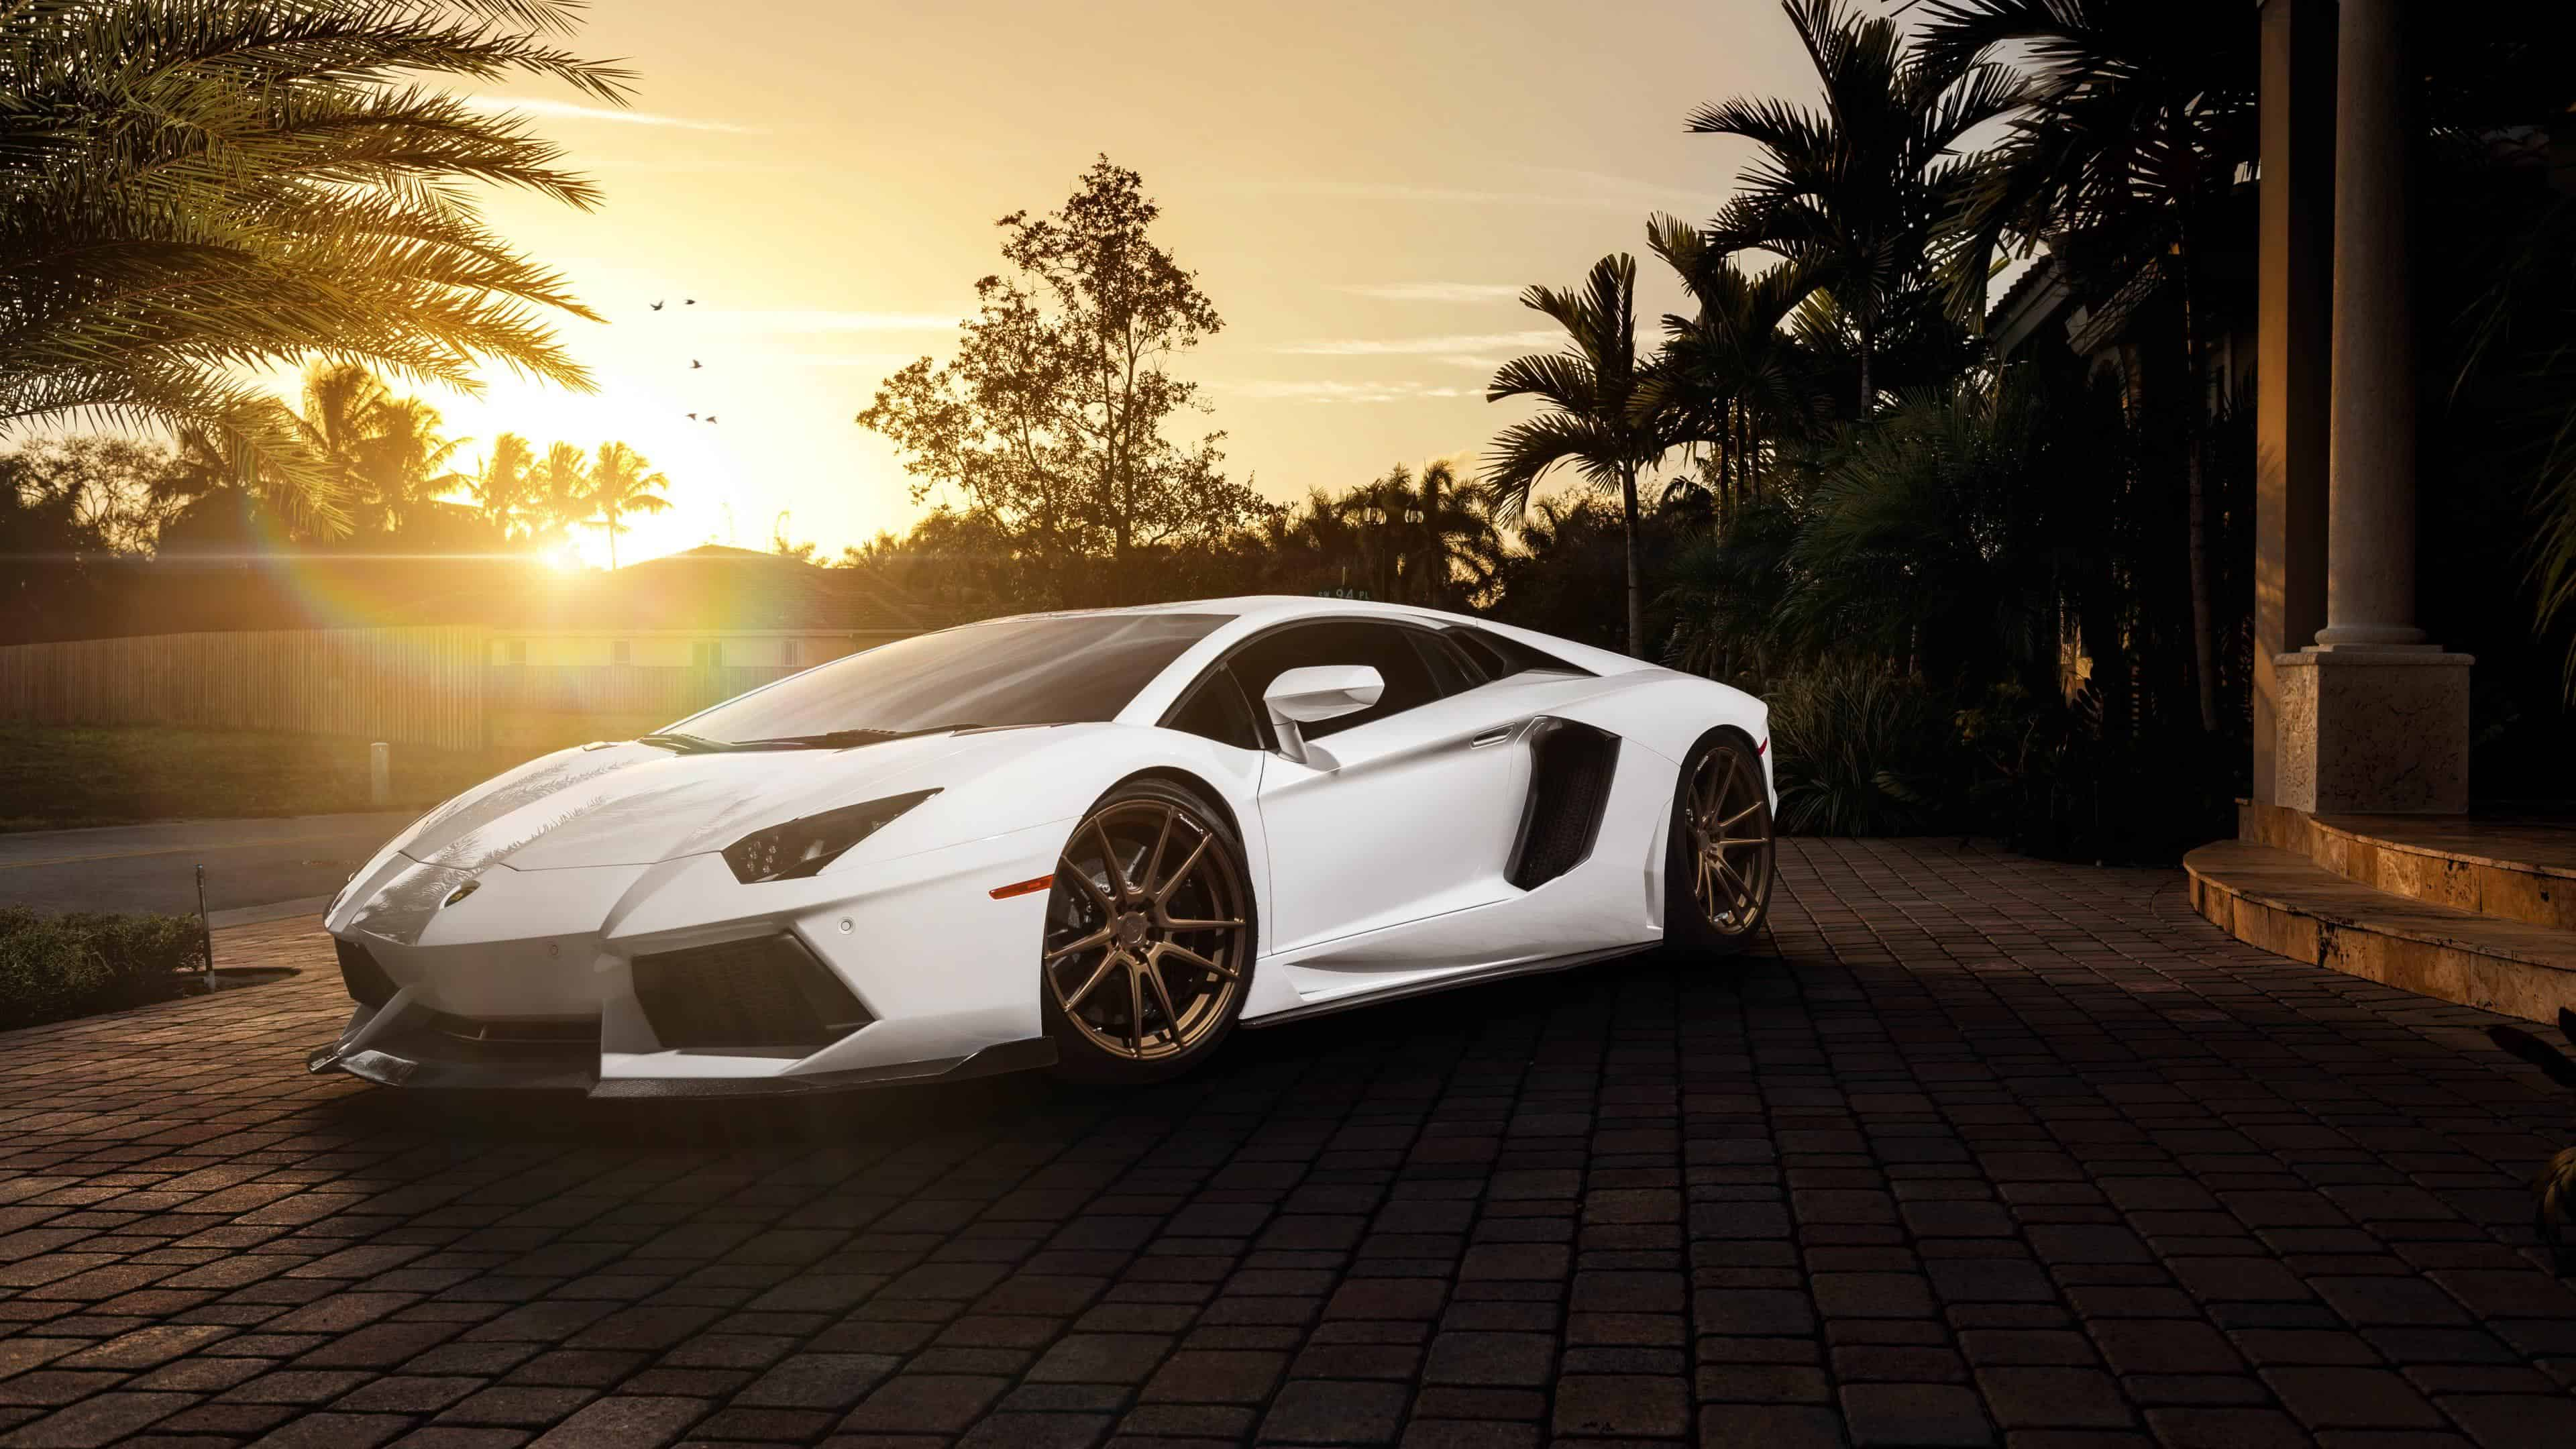 white lamborghini uhd 4k wallpaper